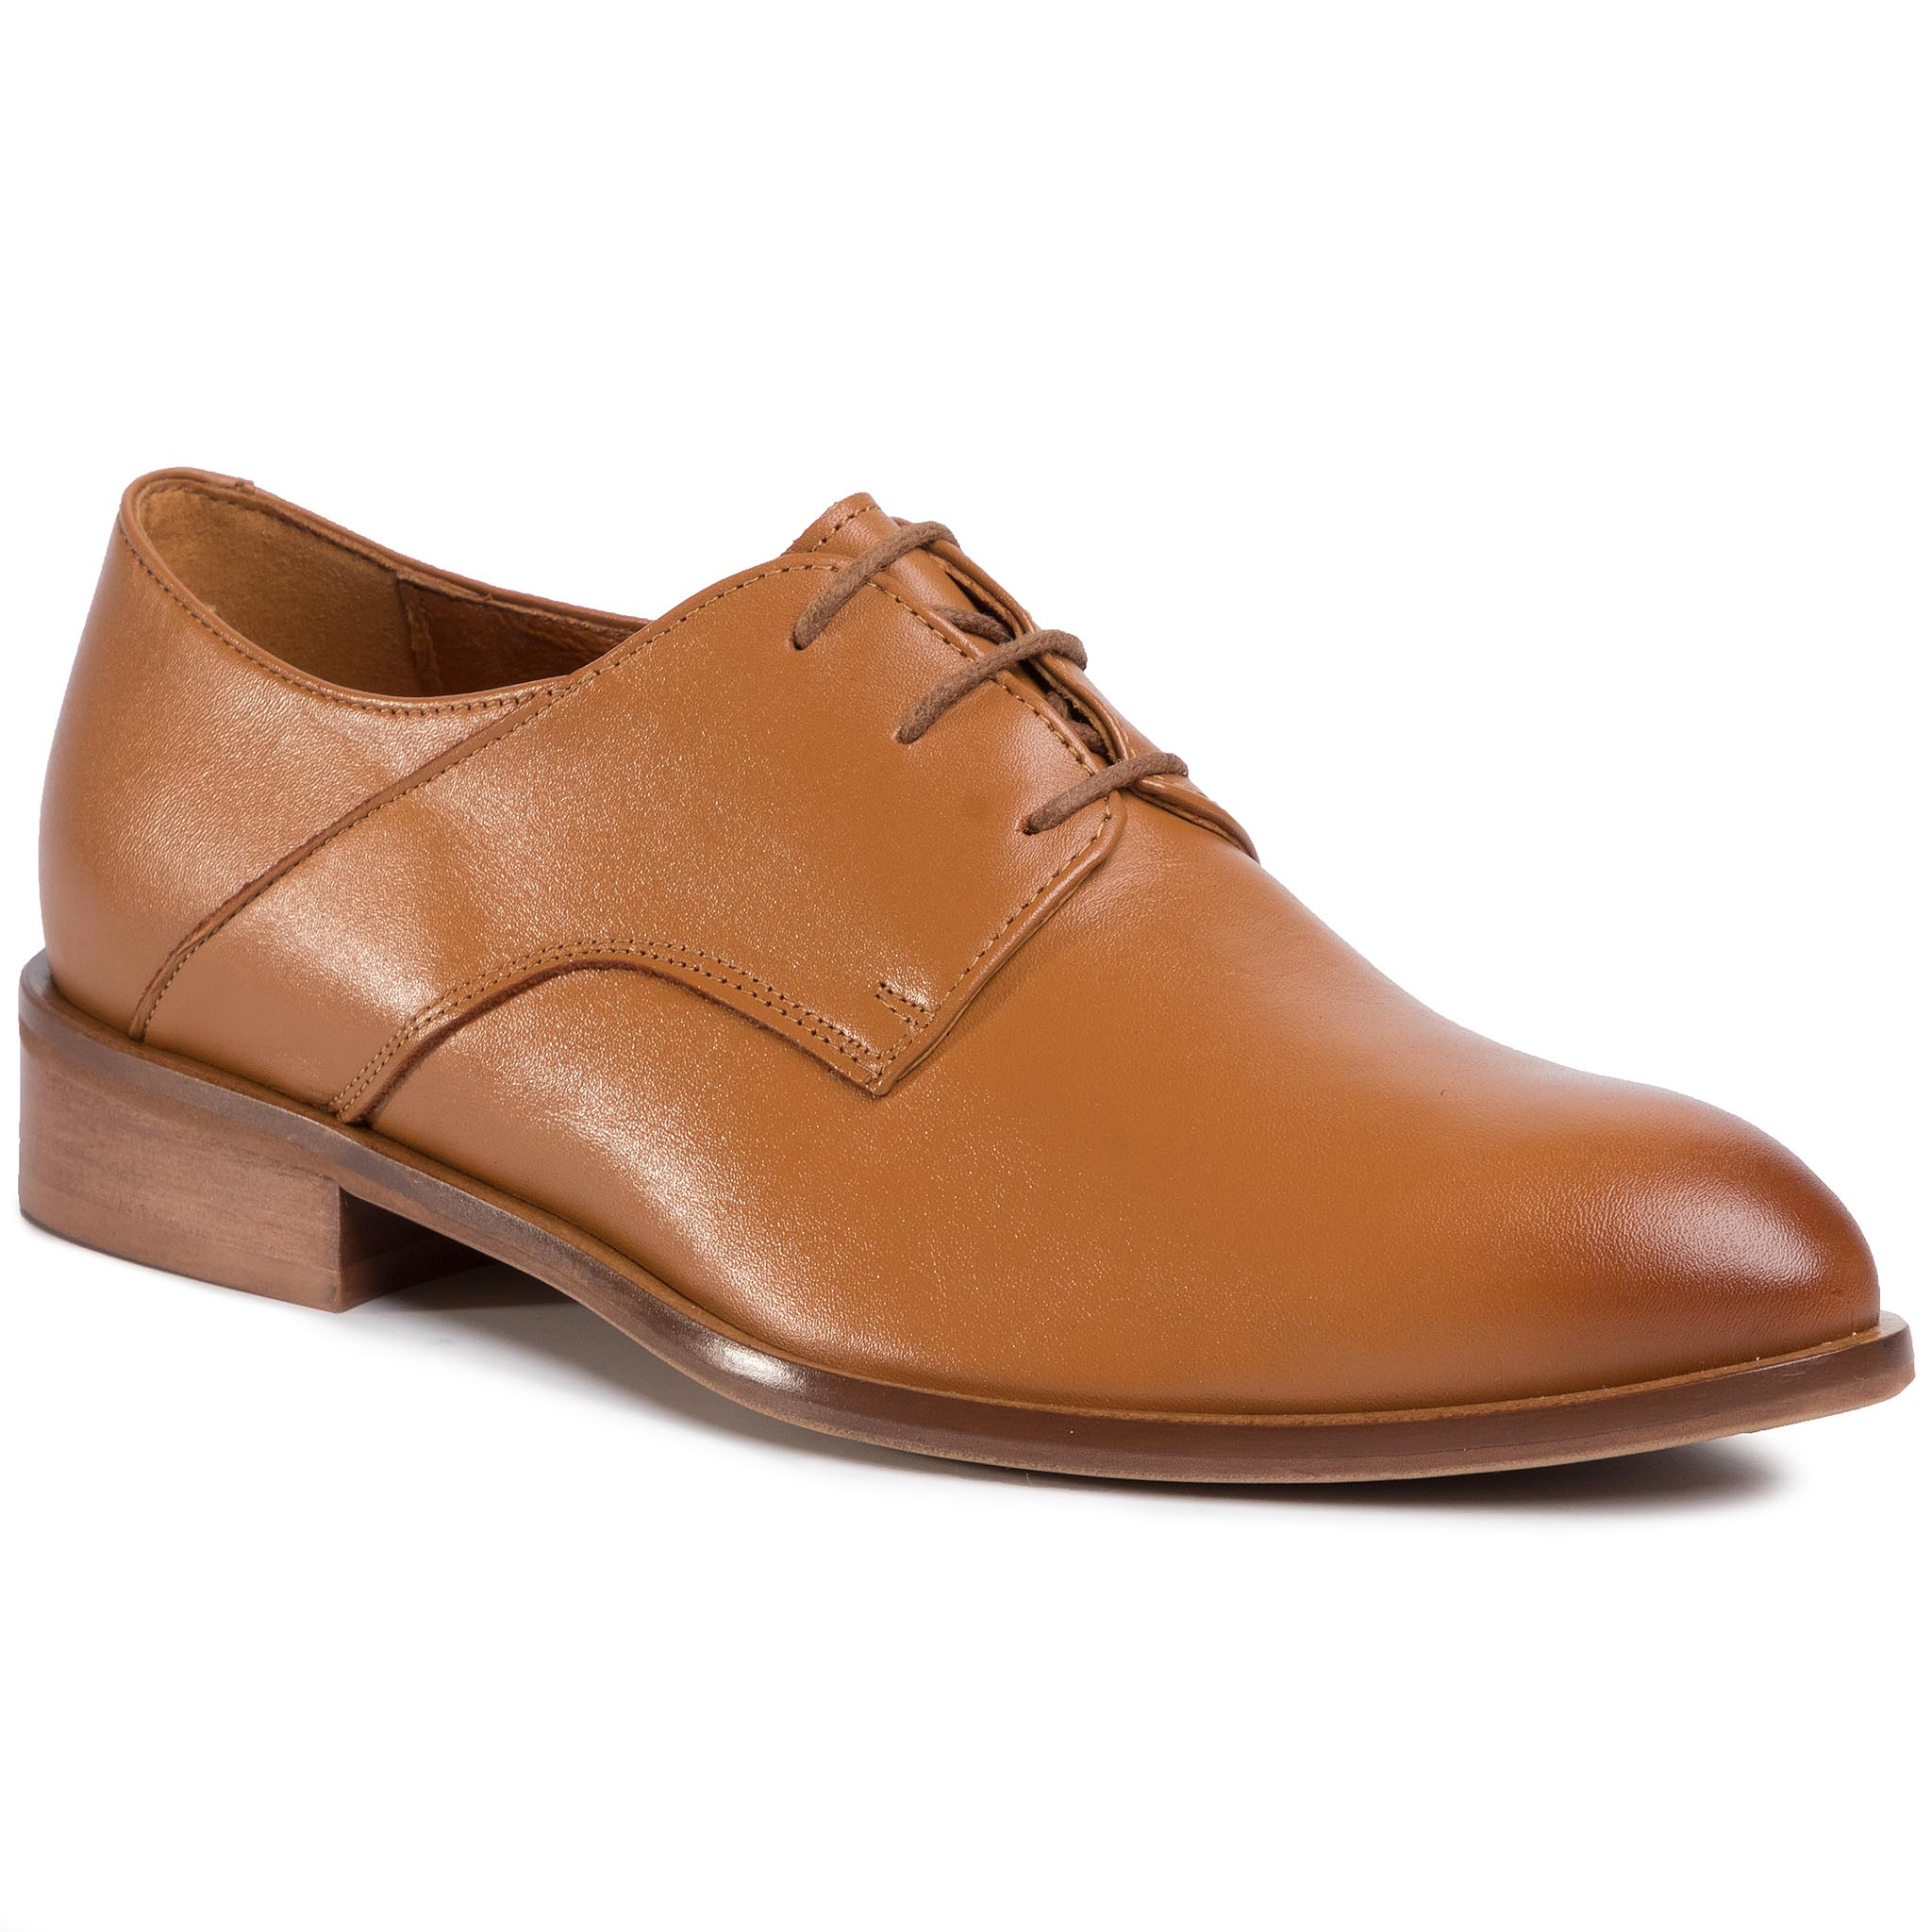 Oxford SOLO FEMME - 77904-08-K84/000-03-00 Rudy